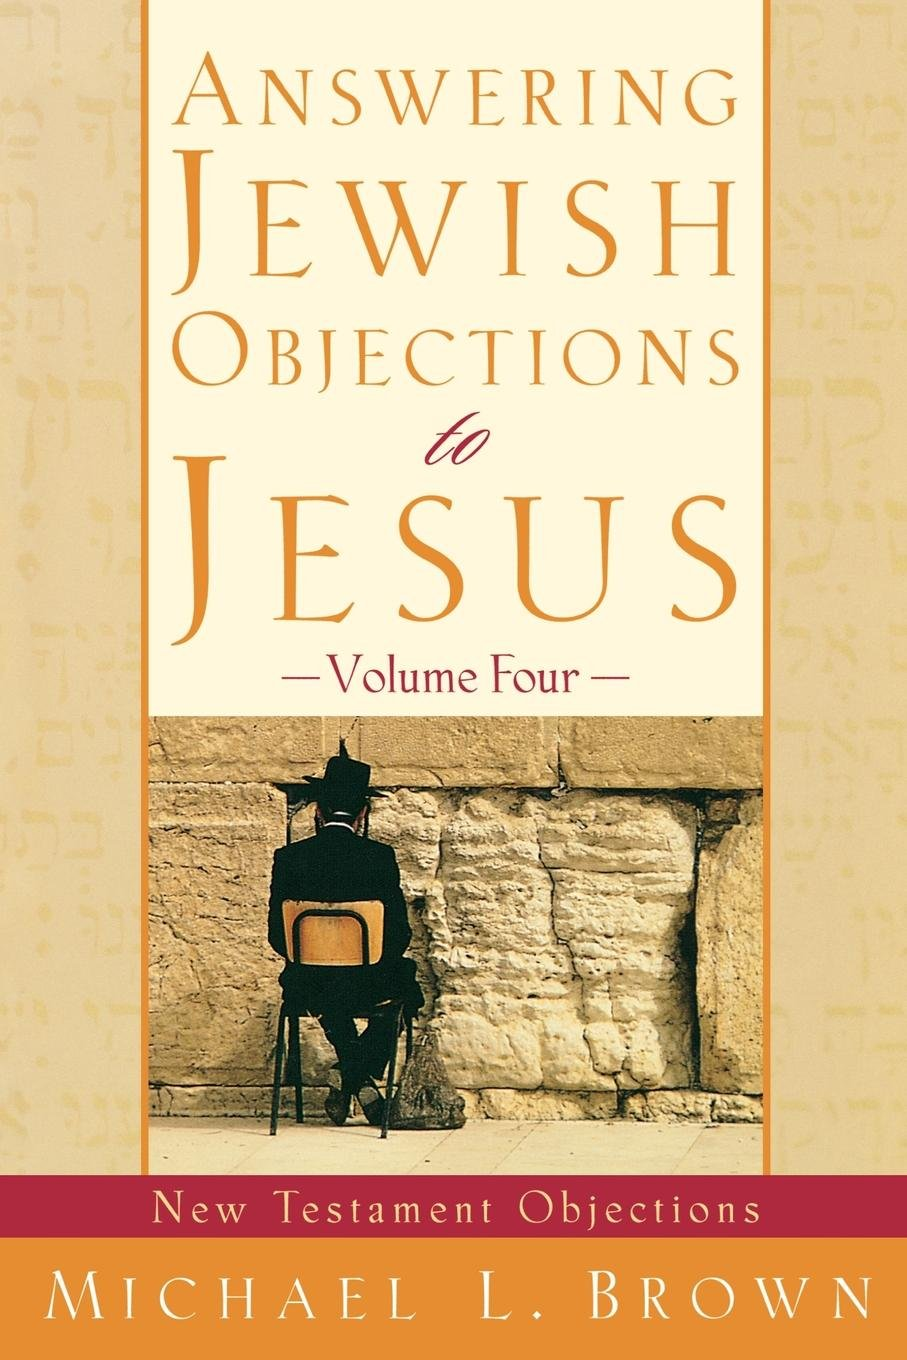 Answering Jewish Objections To Jesus  New Testament Objections